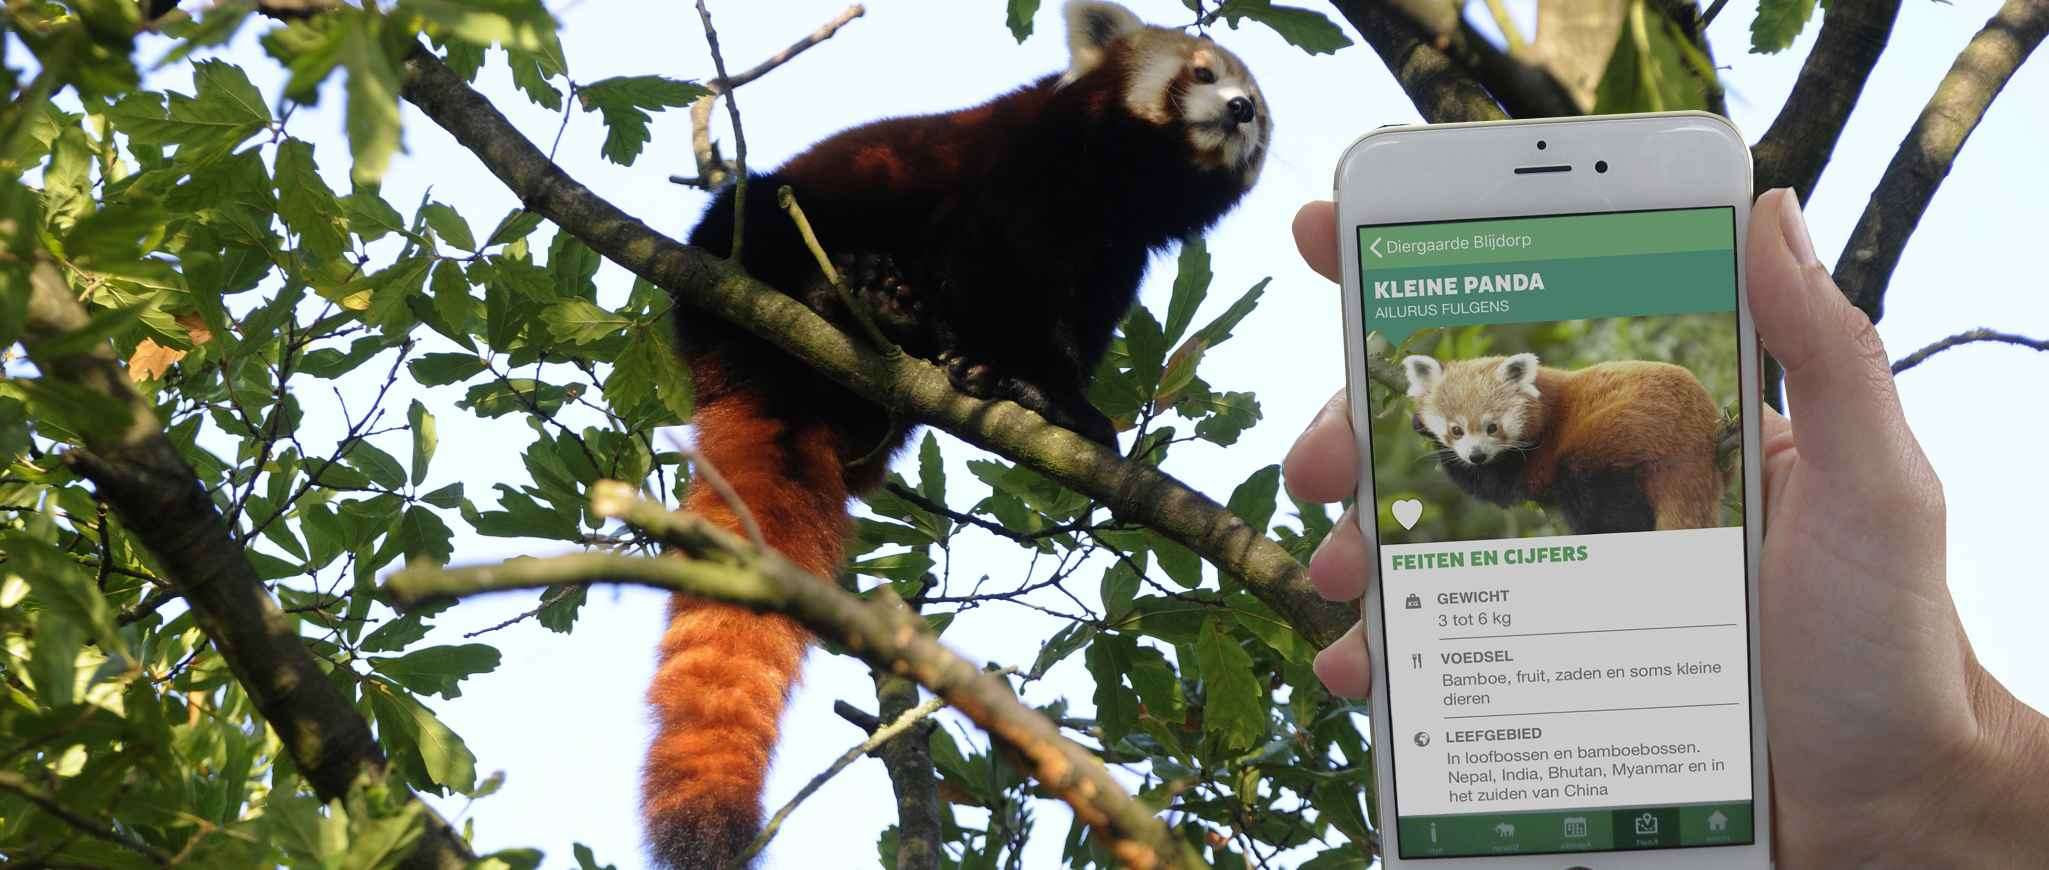 smartphone app and red panda